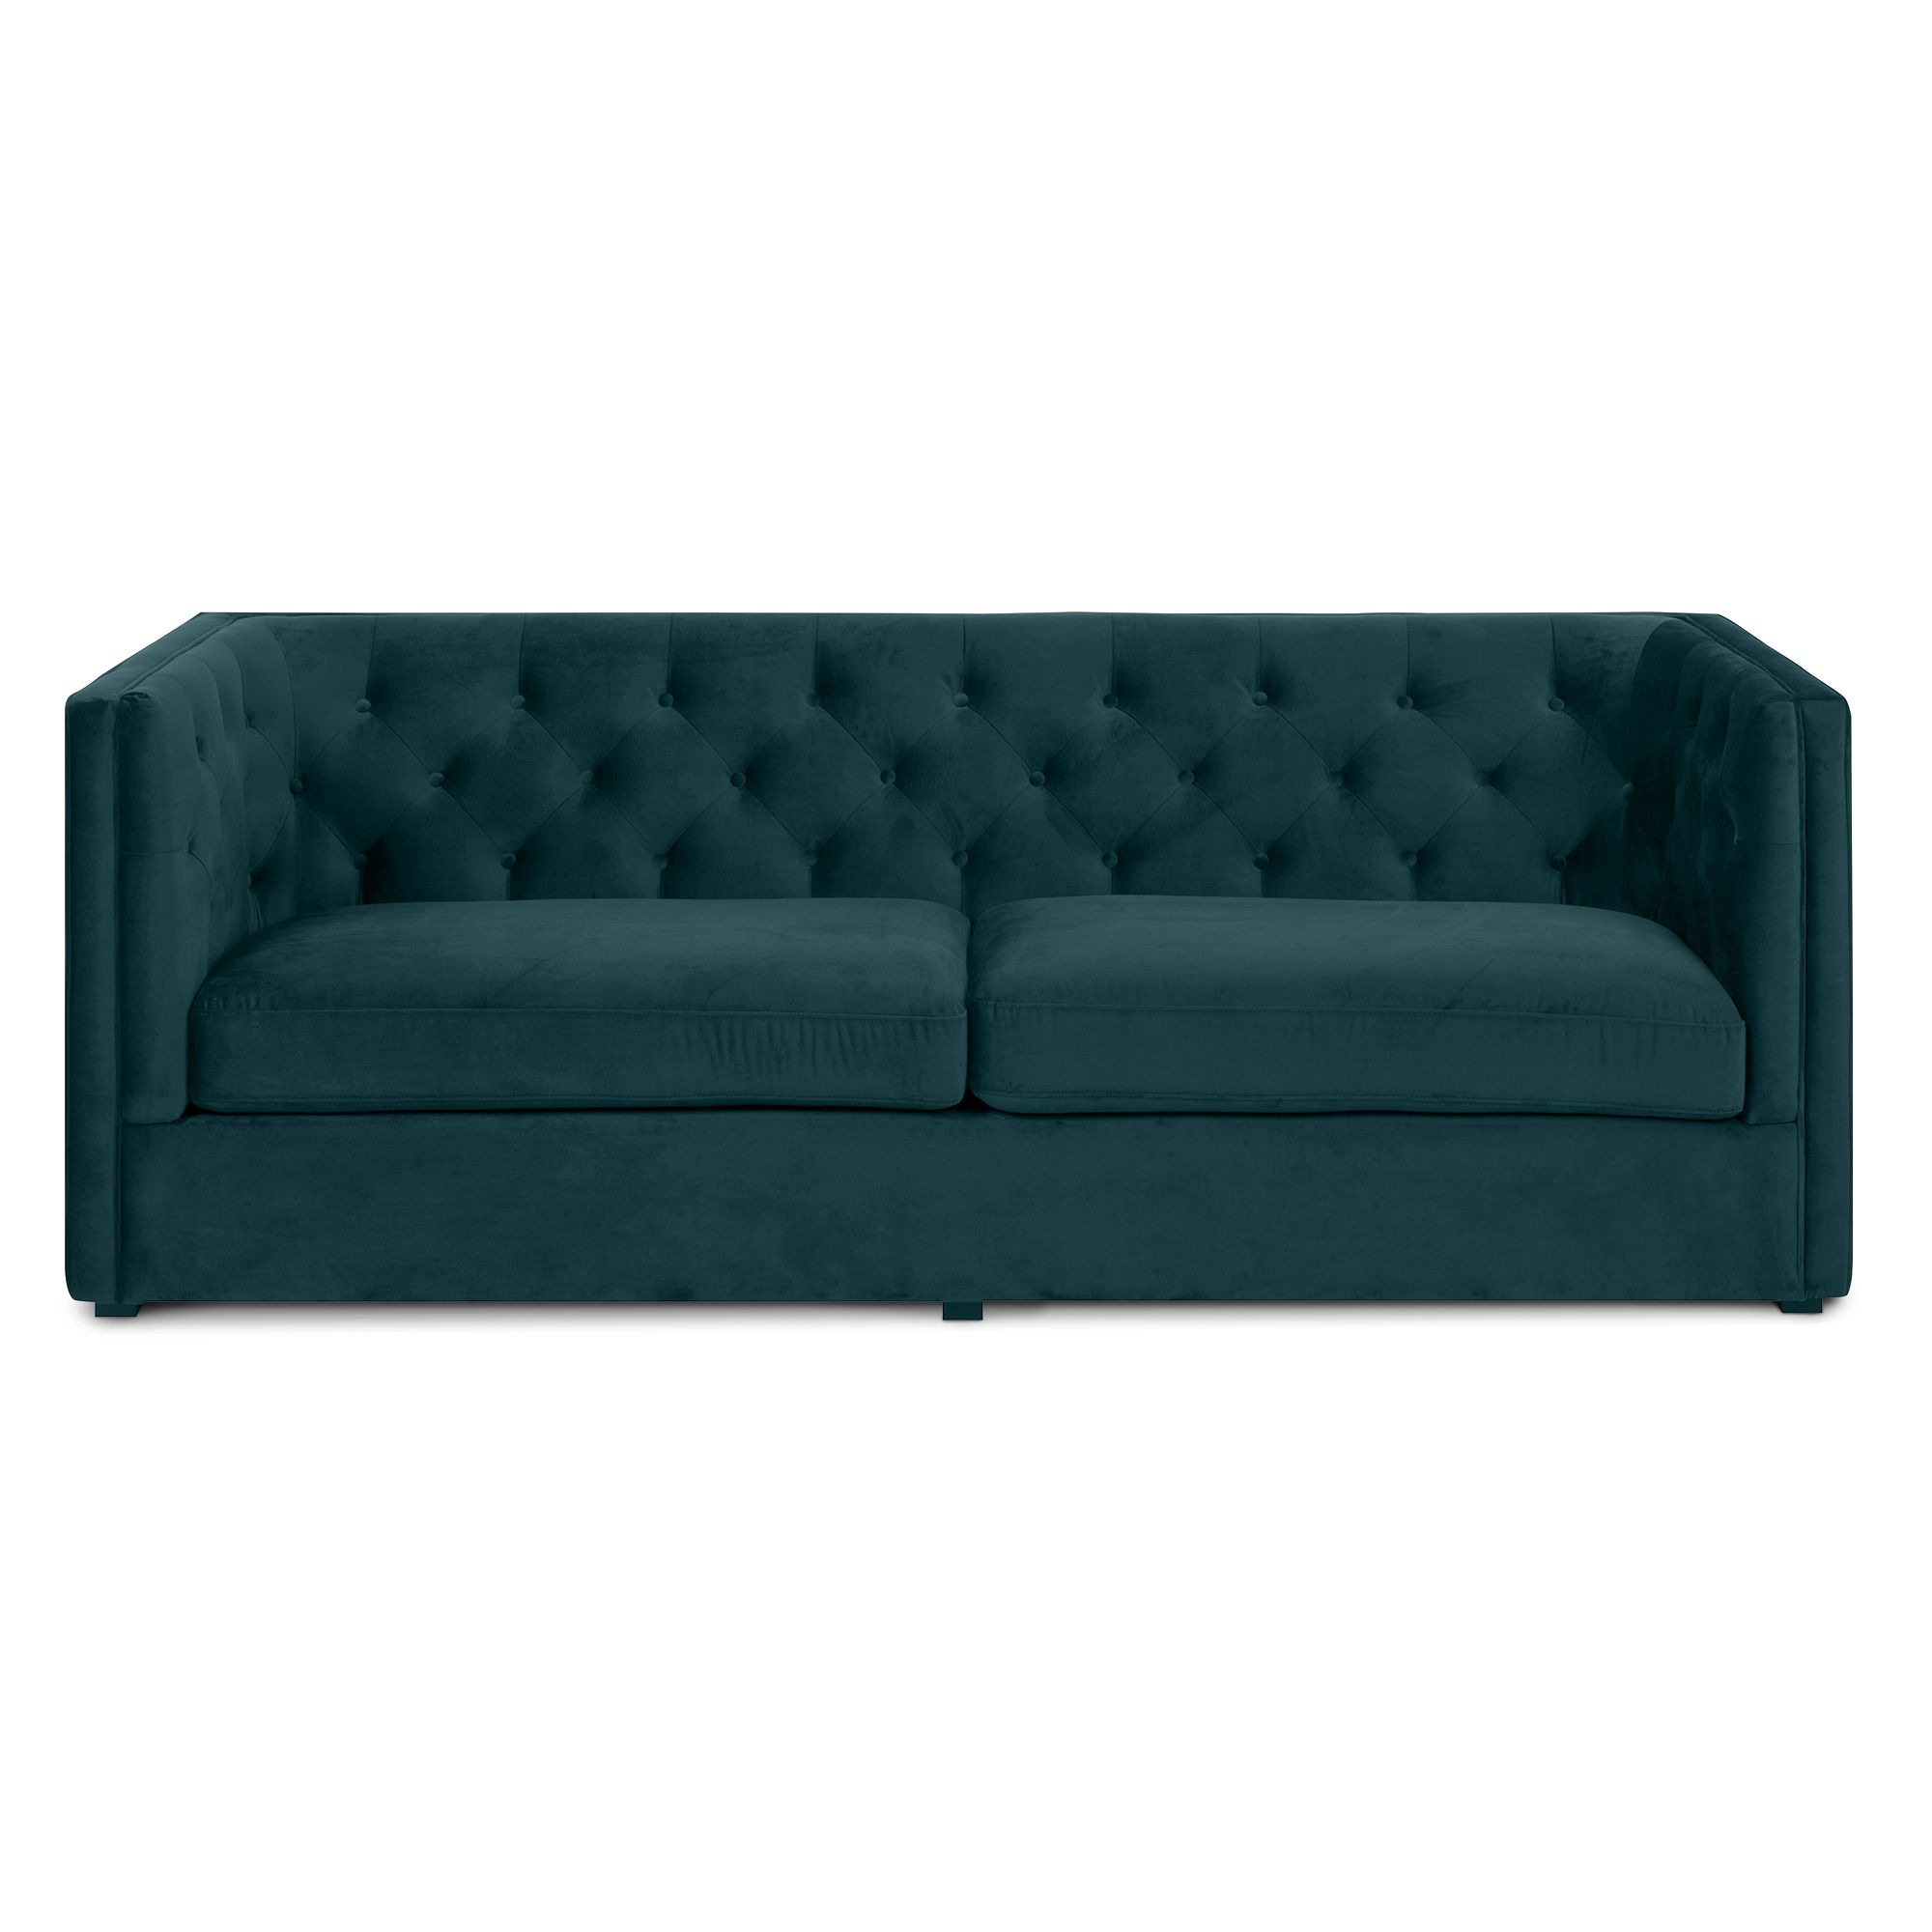 sofa velour 3 pers CHARLSTON 3 PERS SOFA En moderne Chesterfield sofa, monteret med  sofa velour 3 pers